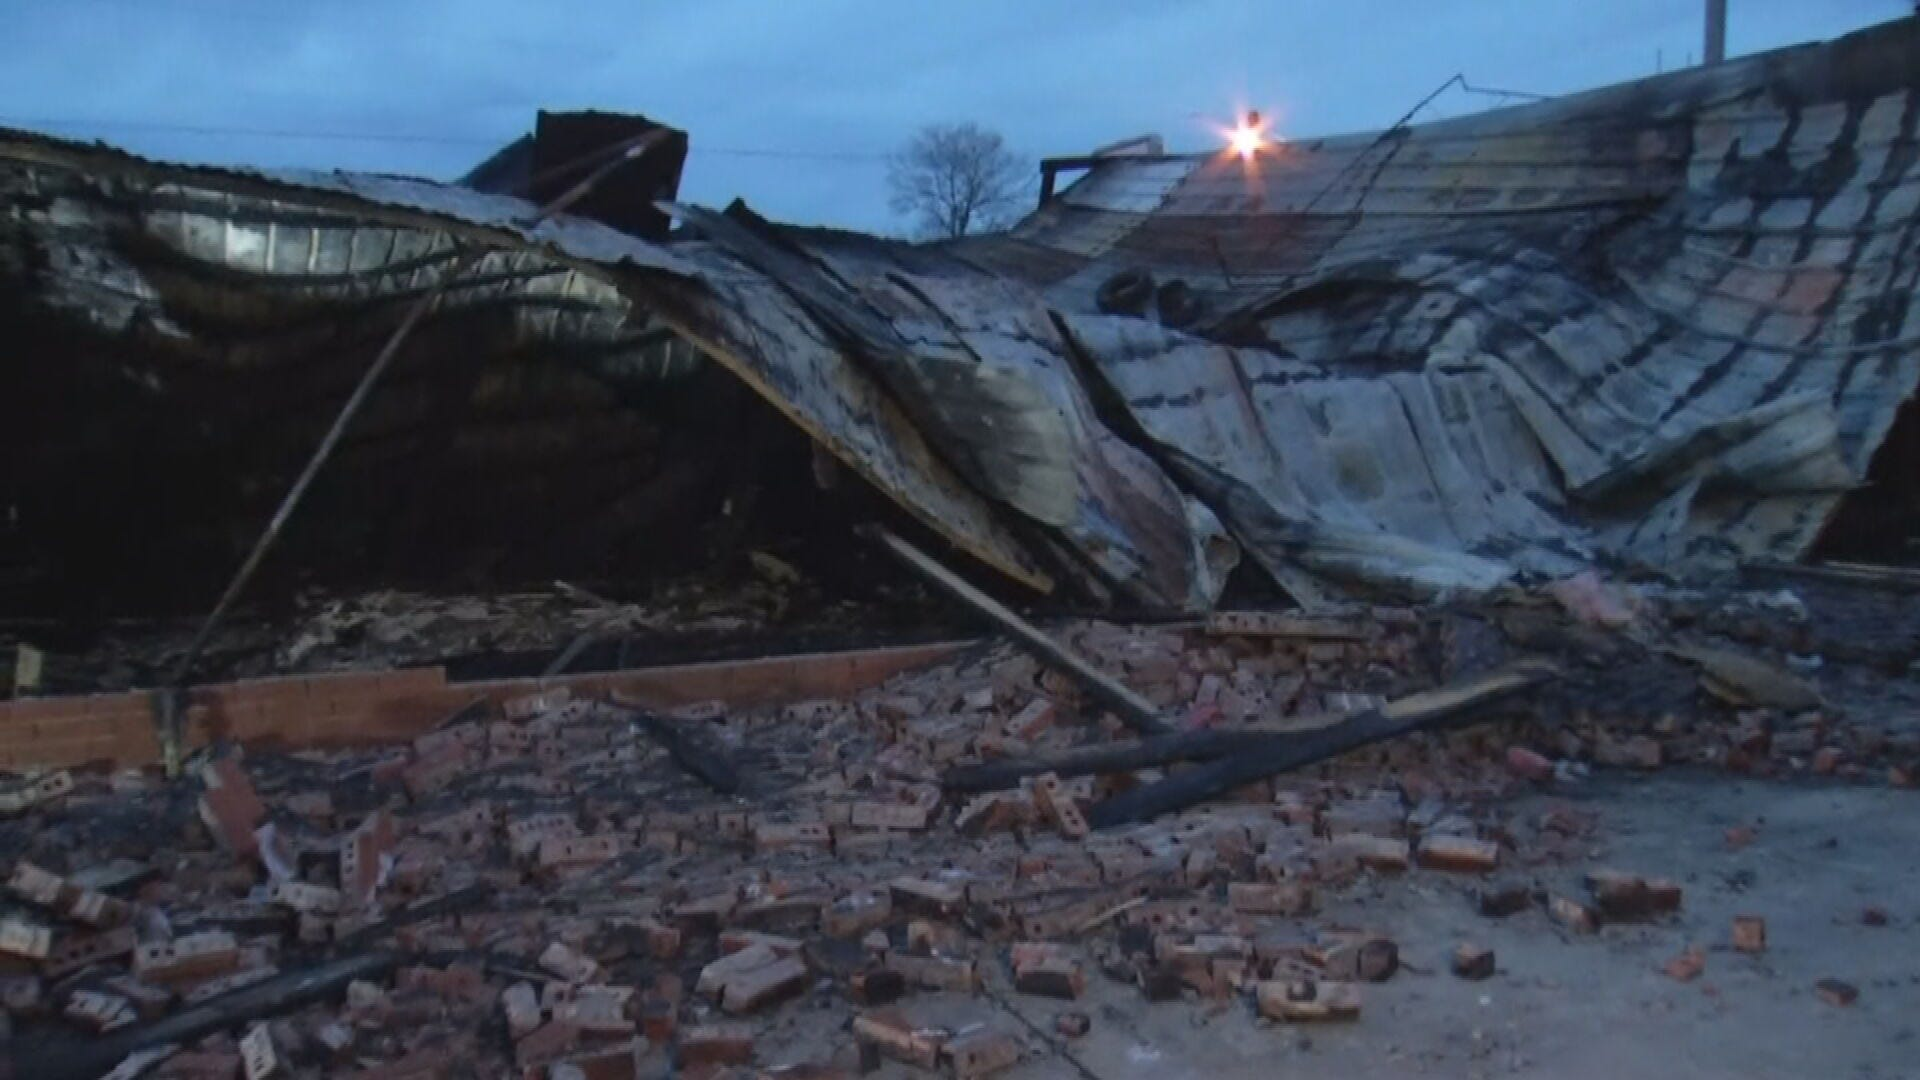 Former Convenience Store Building Total Loss After Fire, Firefighters Say